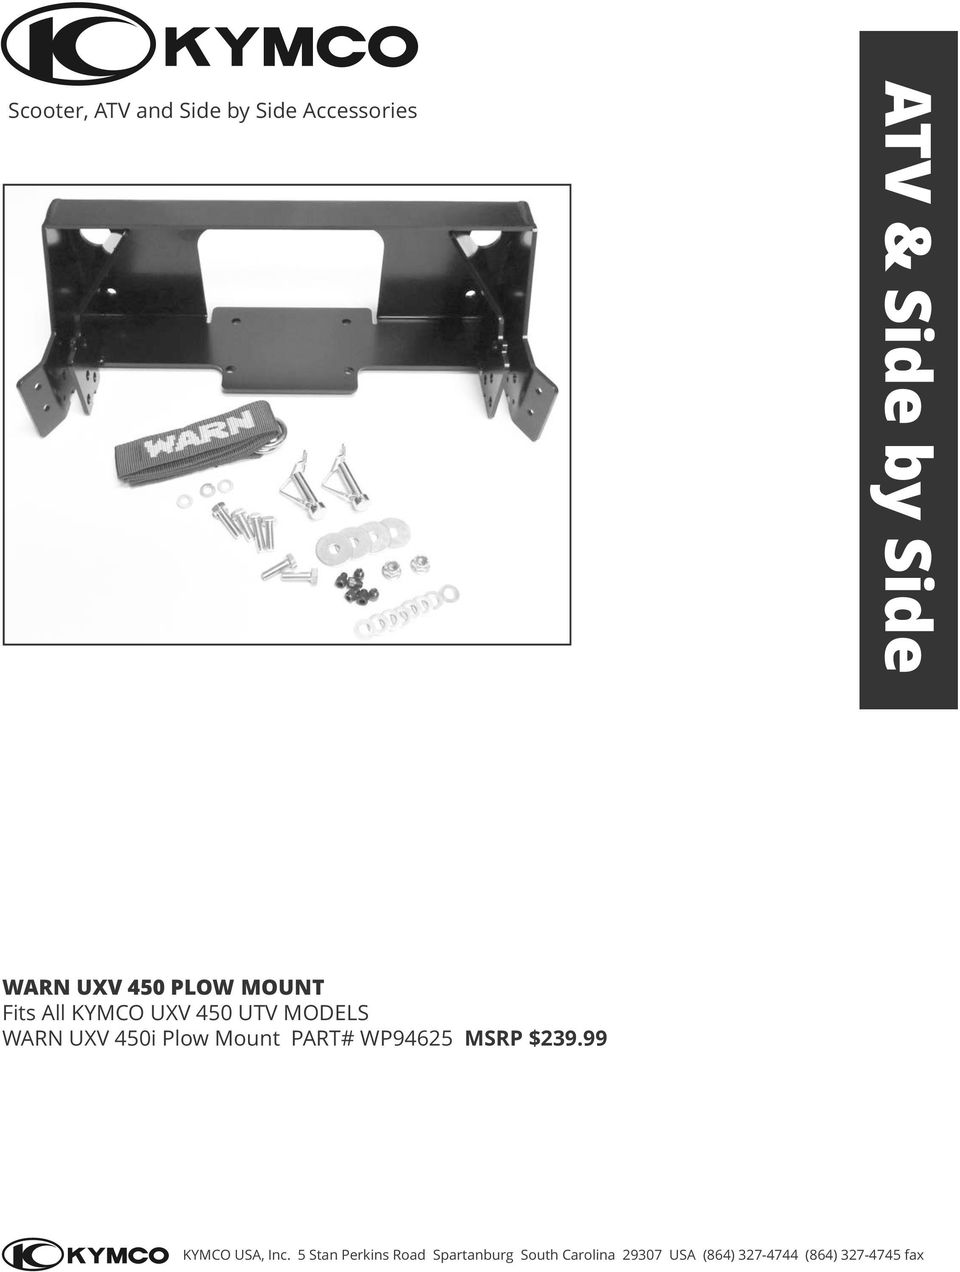 KYMCO OFF ROAD Accessories - PDF